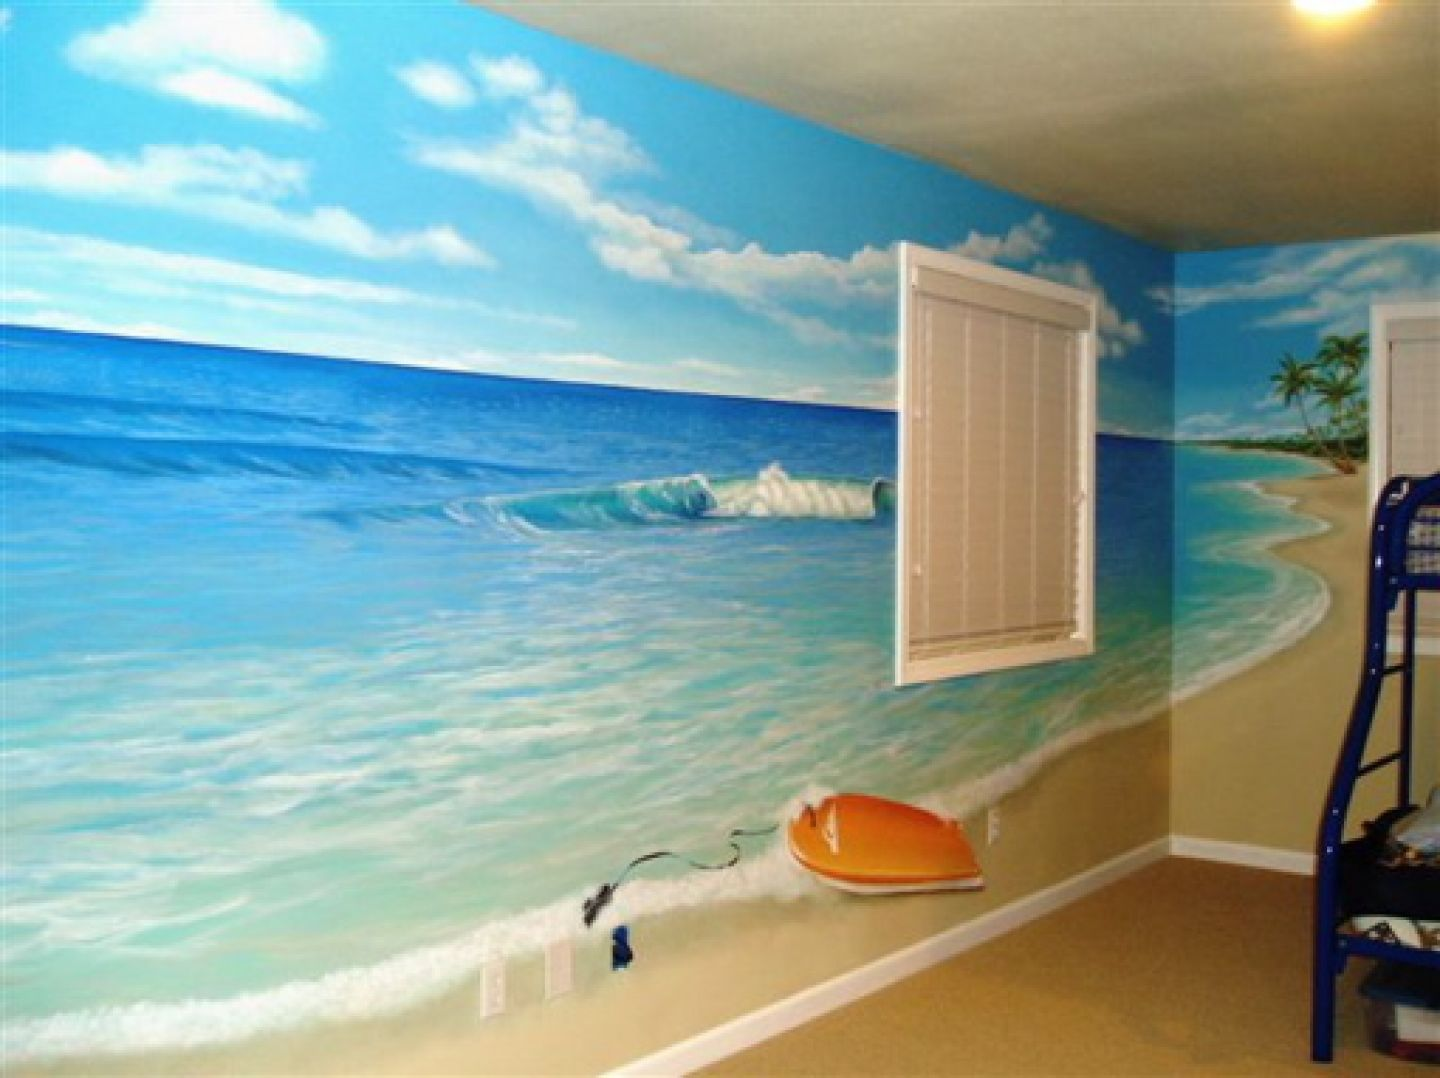 beach mural ideas to paint on divider wall | tags beach beach